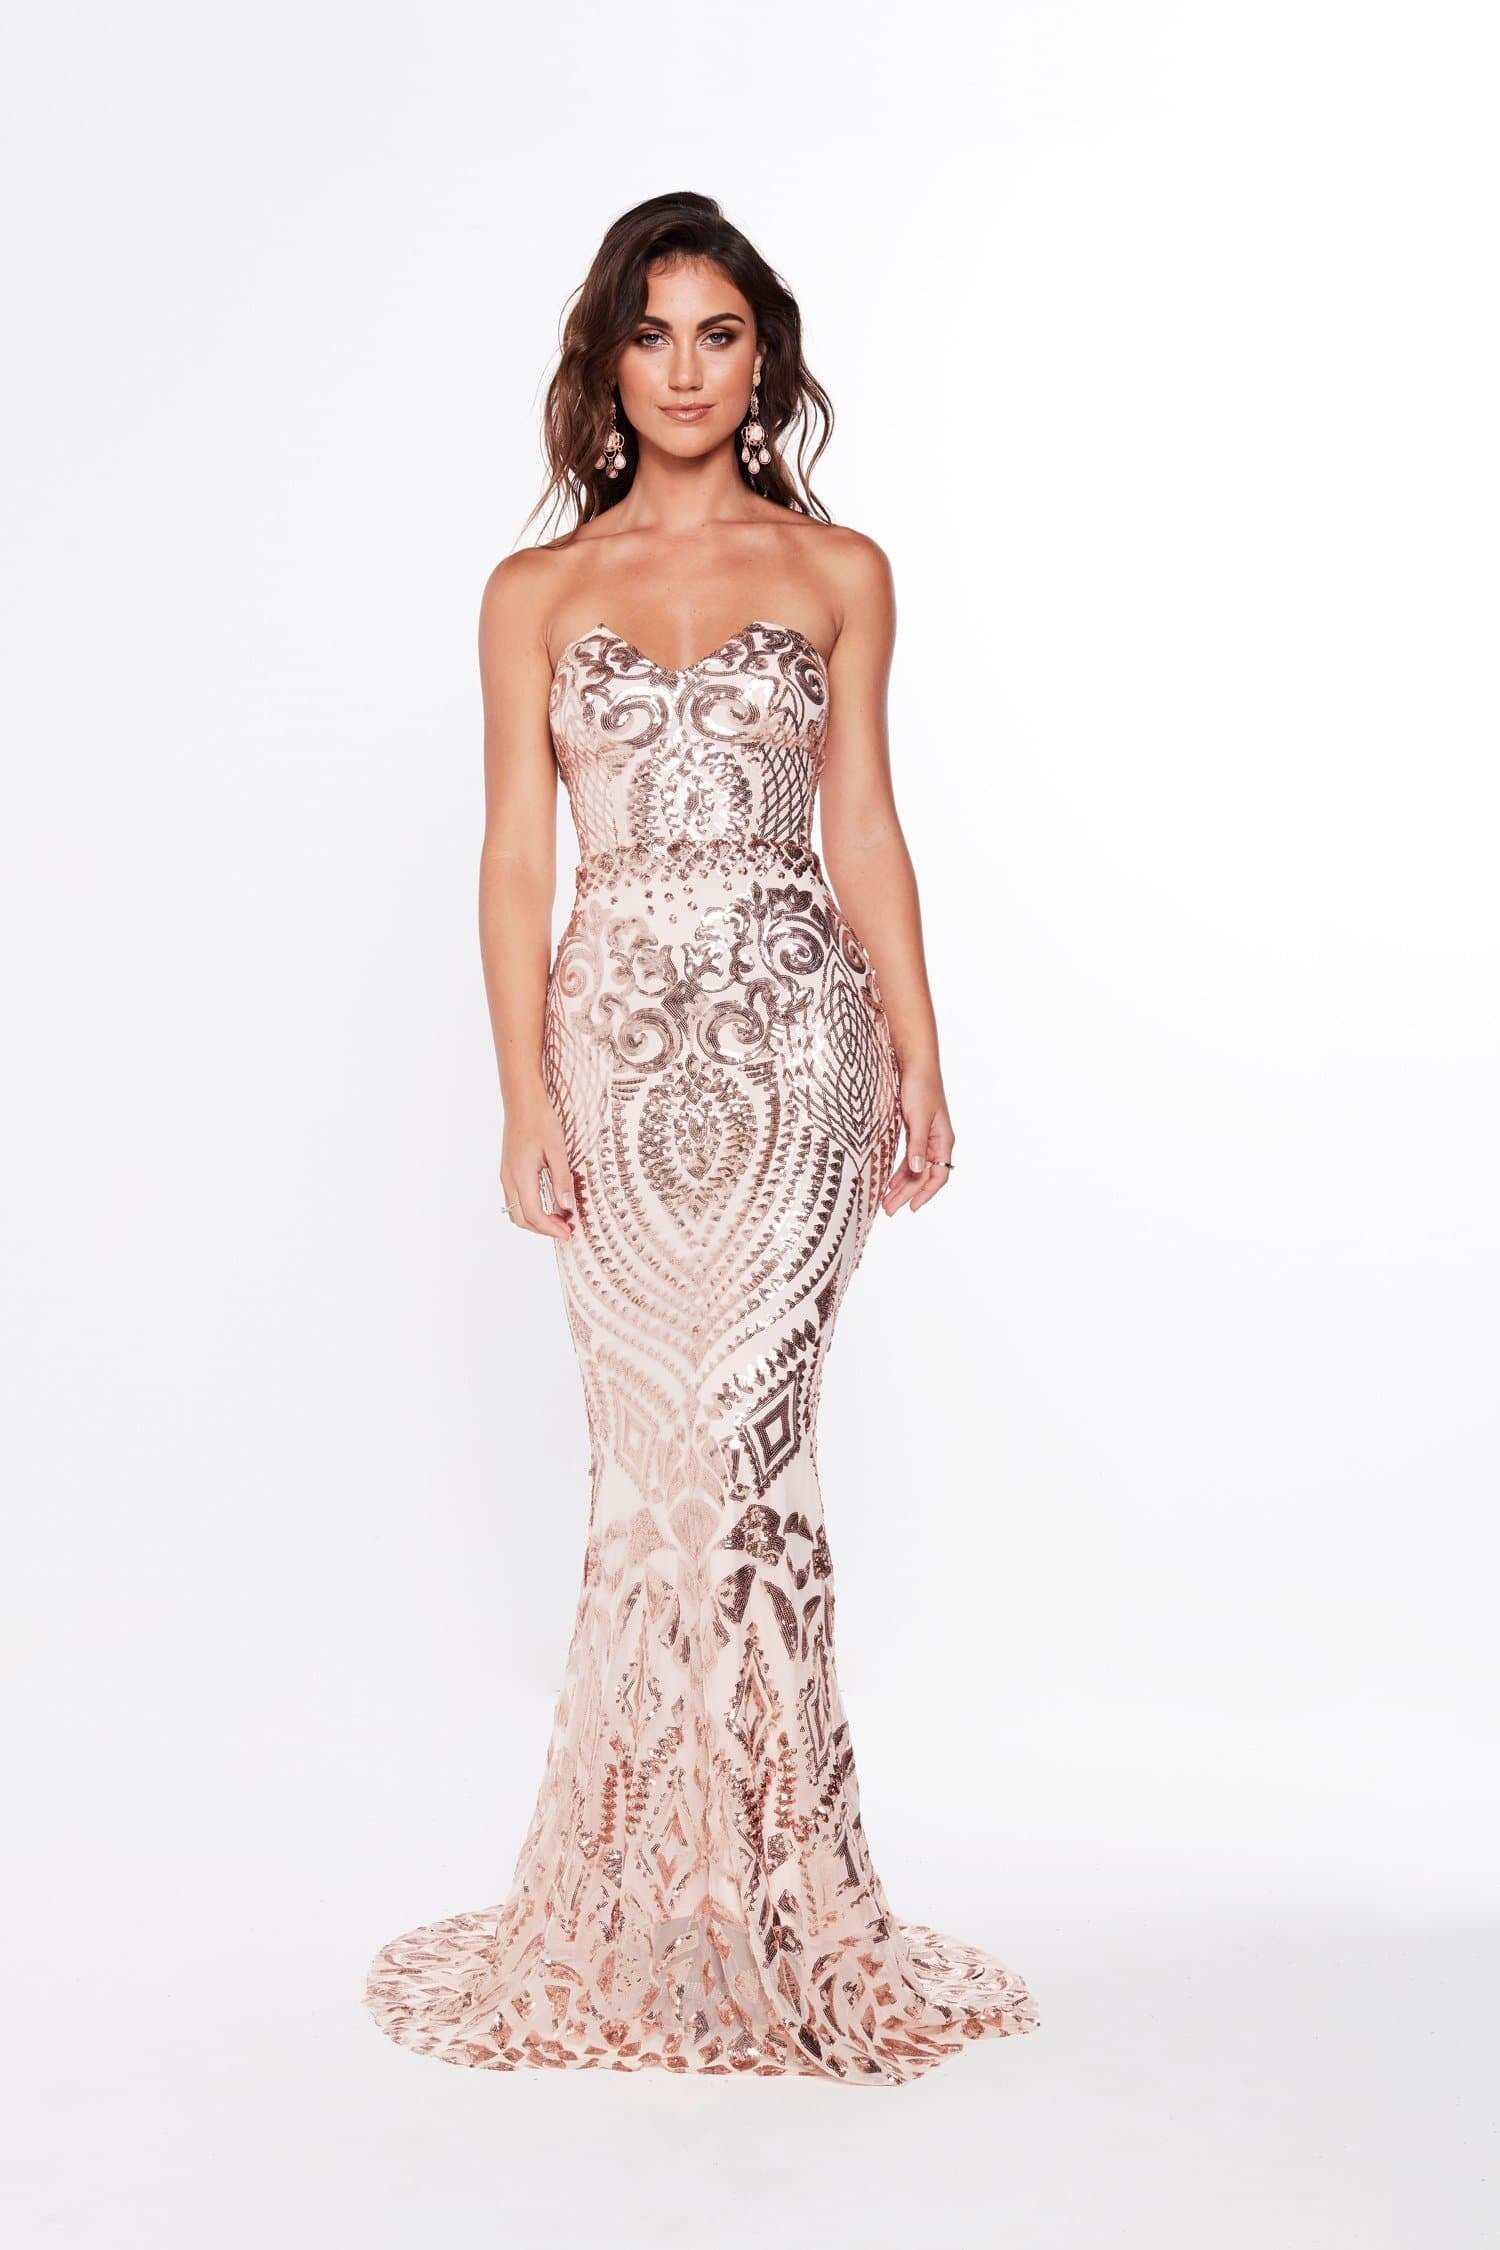 cd05a67792757 A N Valery - Rose Gold Sequin Gown with Mermaid Train – A N Luxe Label